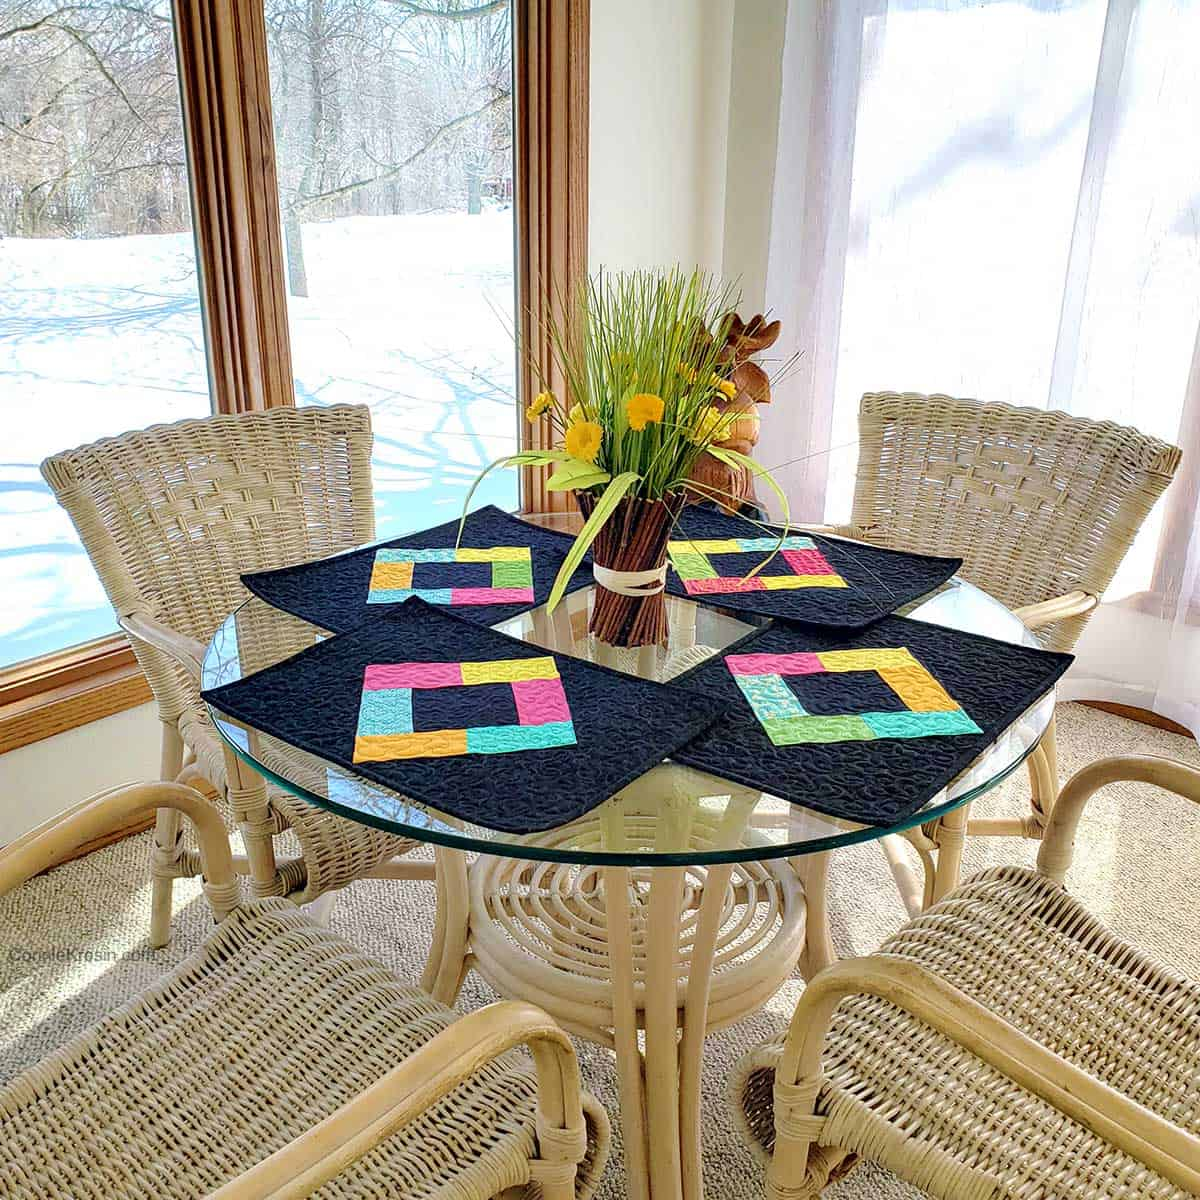 Midnight Glow placemats on wicker table